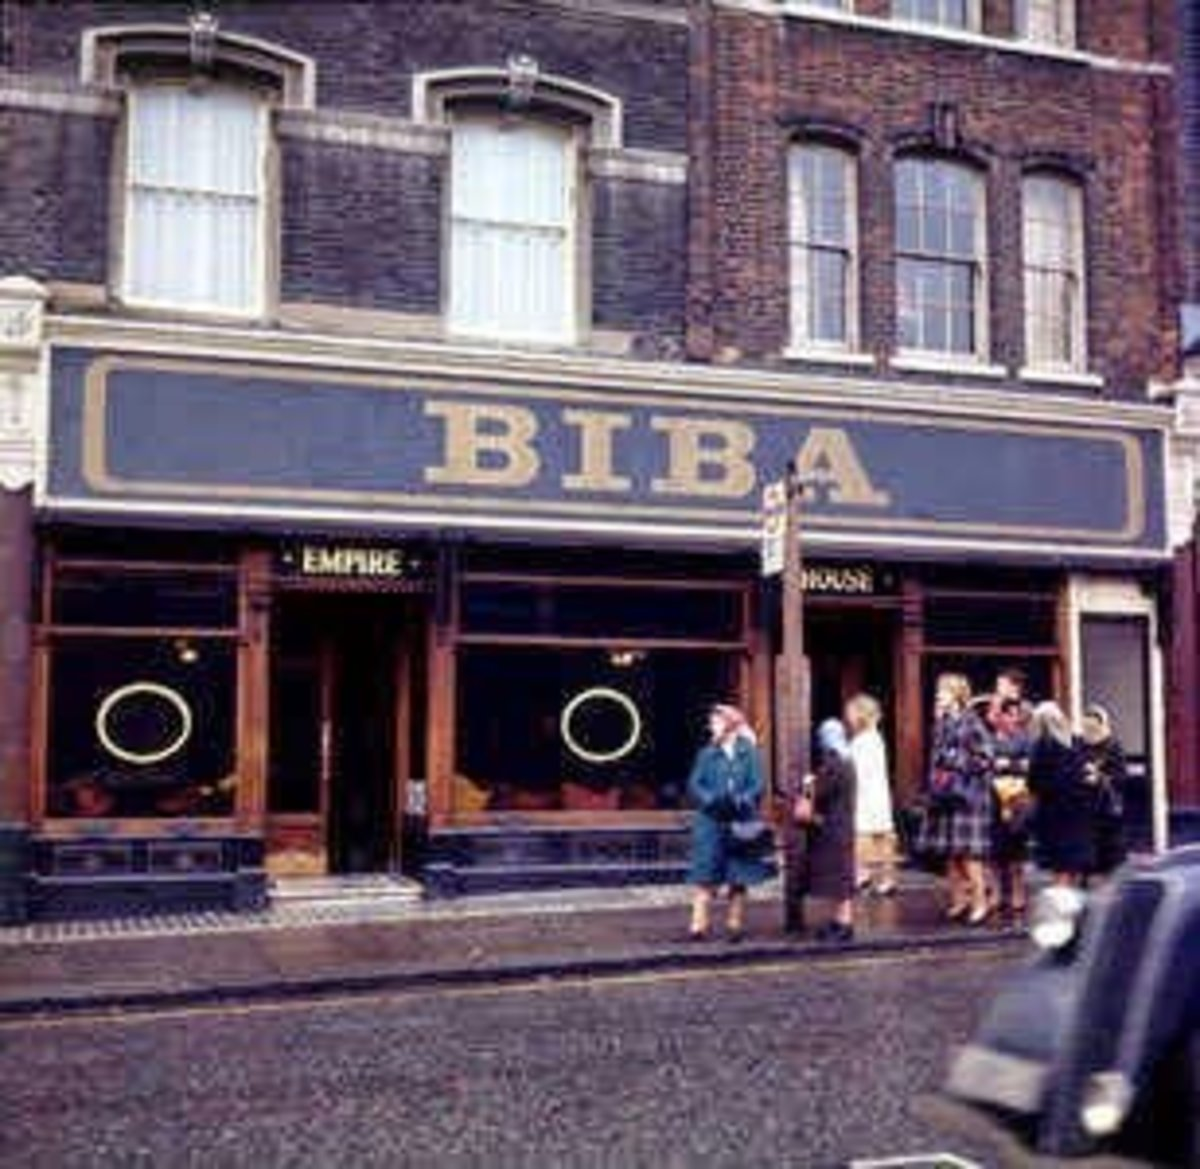 Rock and roll history was made at Biba -- it's where Mary and Freddie met.